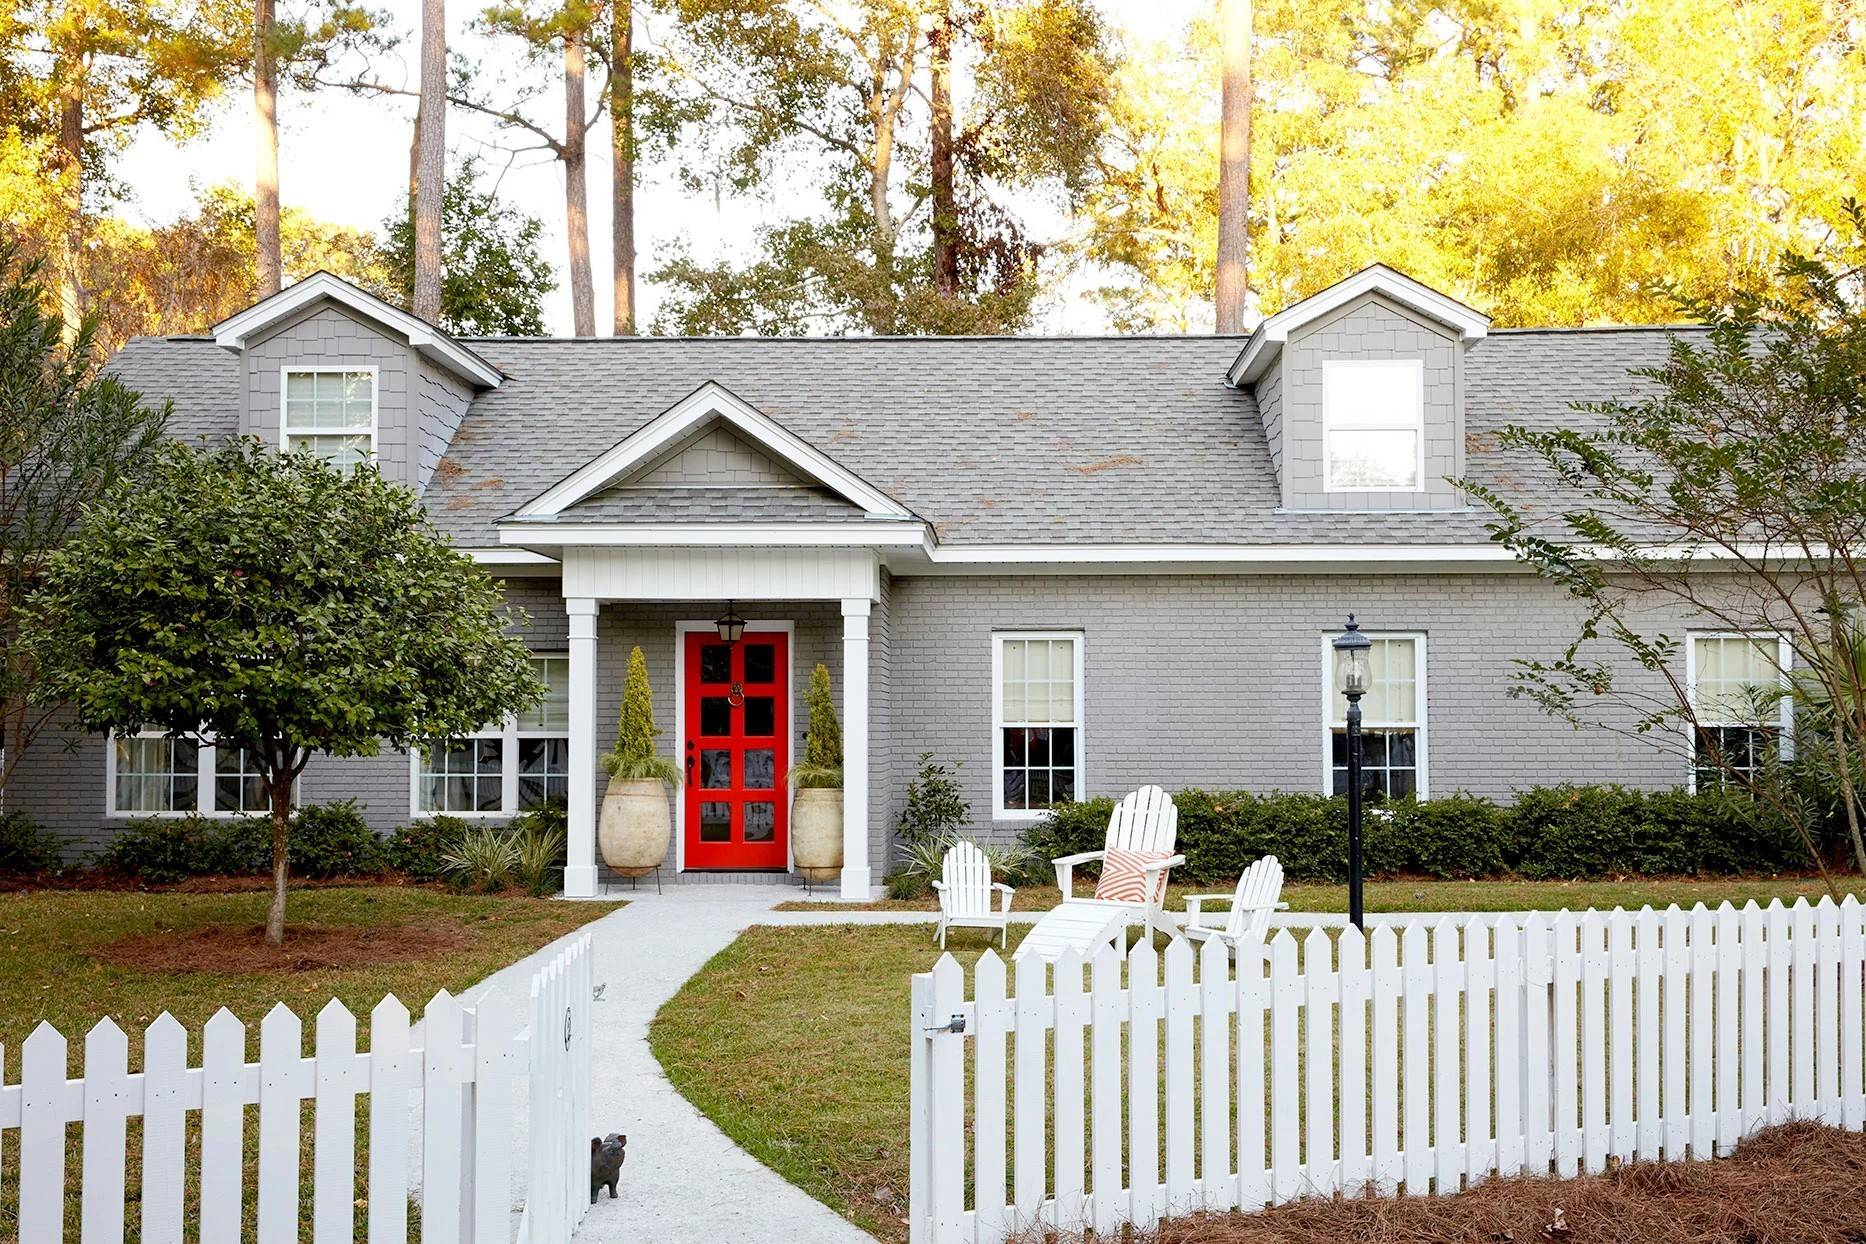 white picket fence in front of grey home with red door